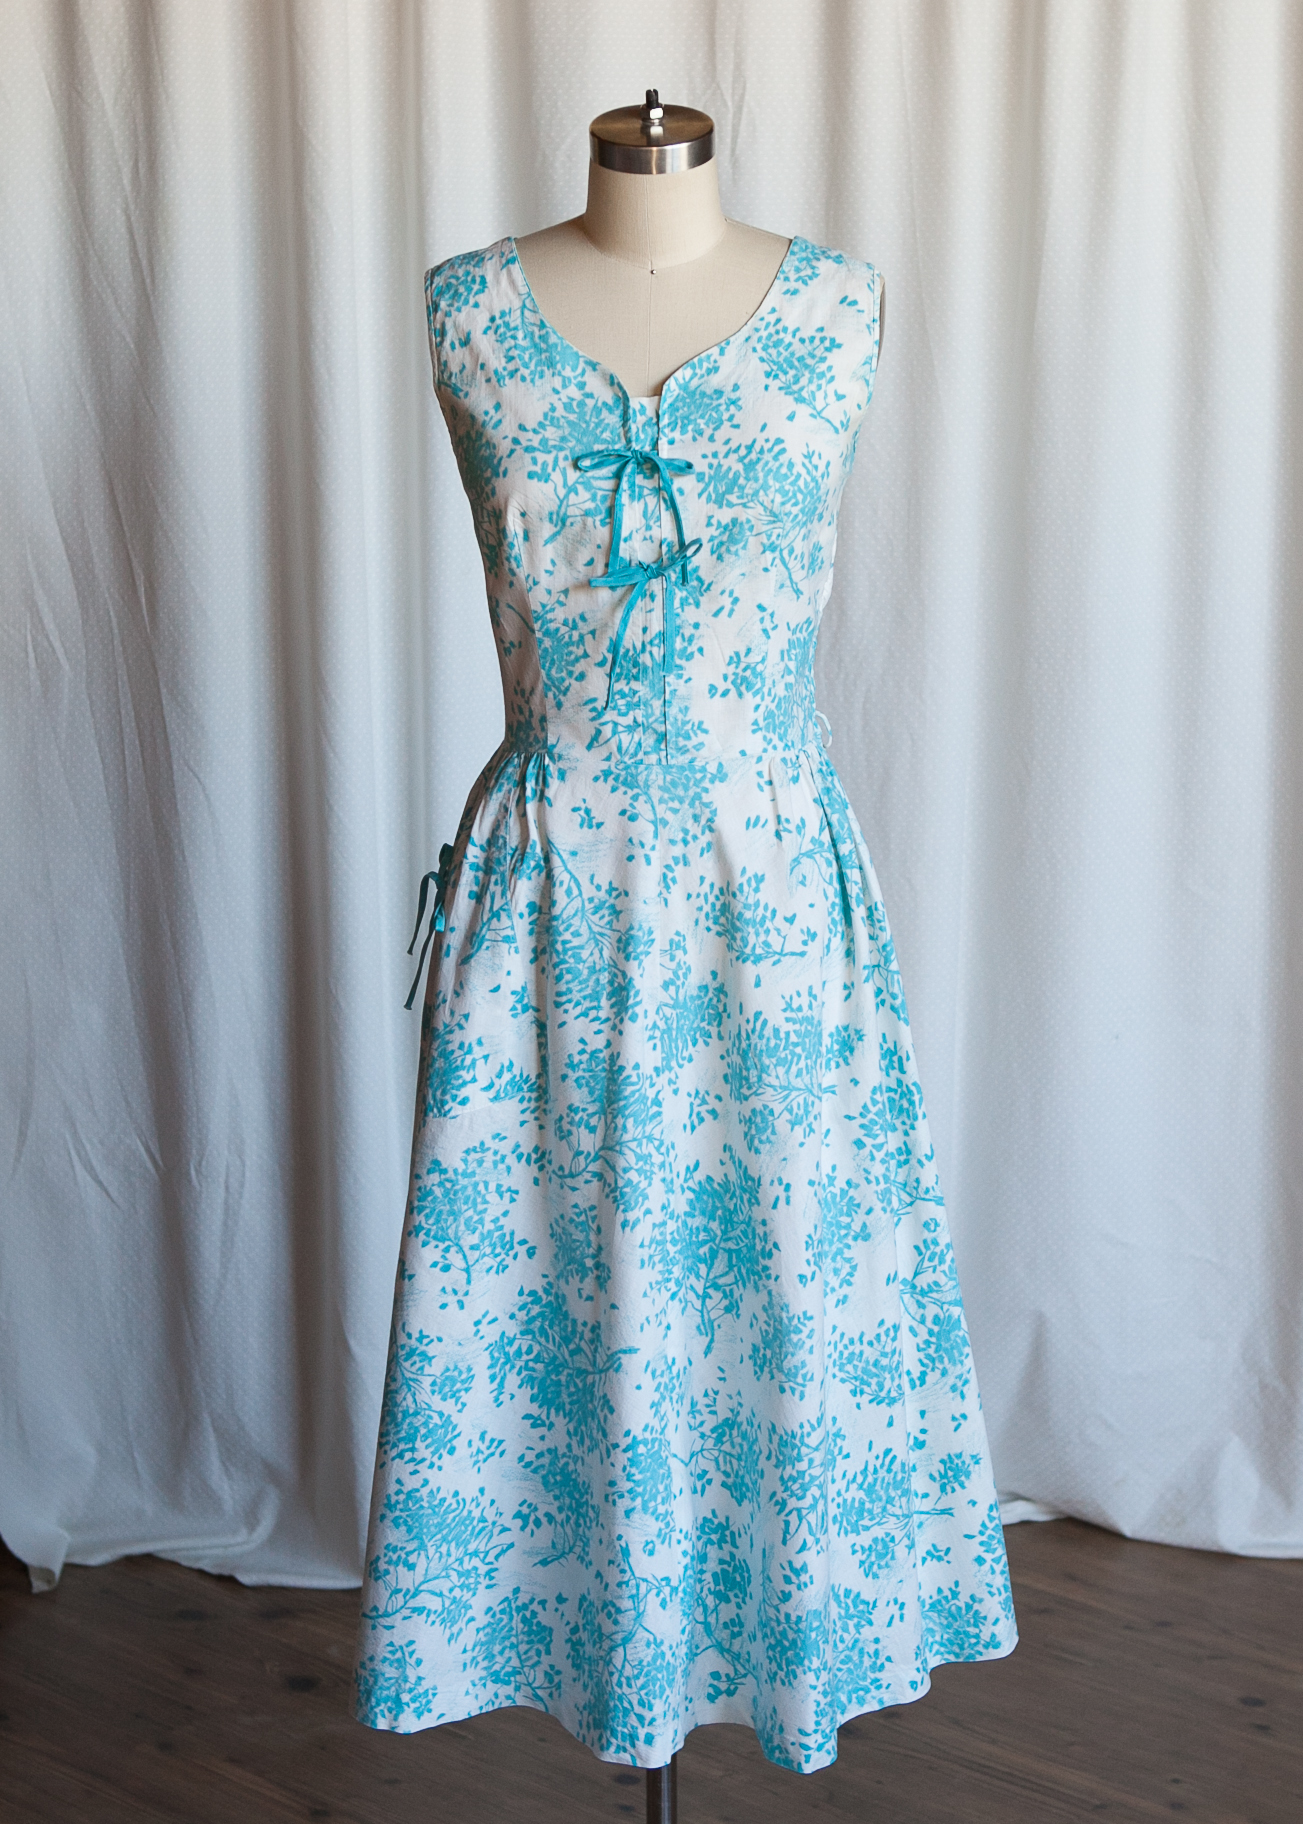 shop update – Two Old Beans Vintage Clothing